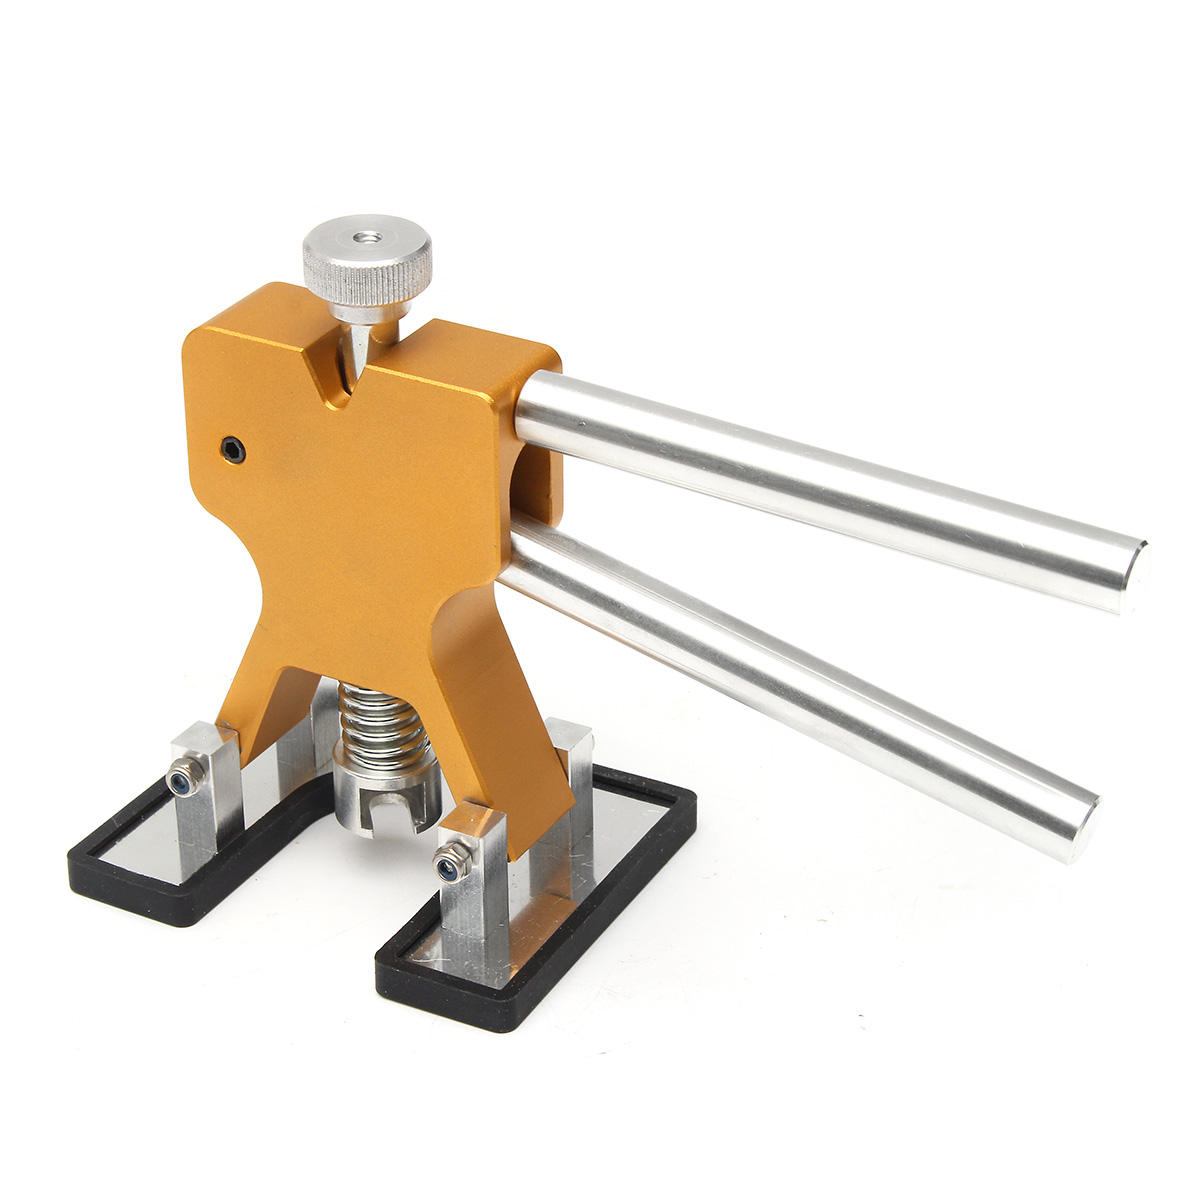 Lifter Glue Puller Tab Hail Removal